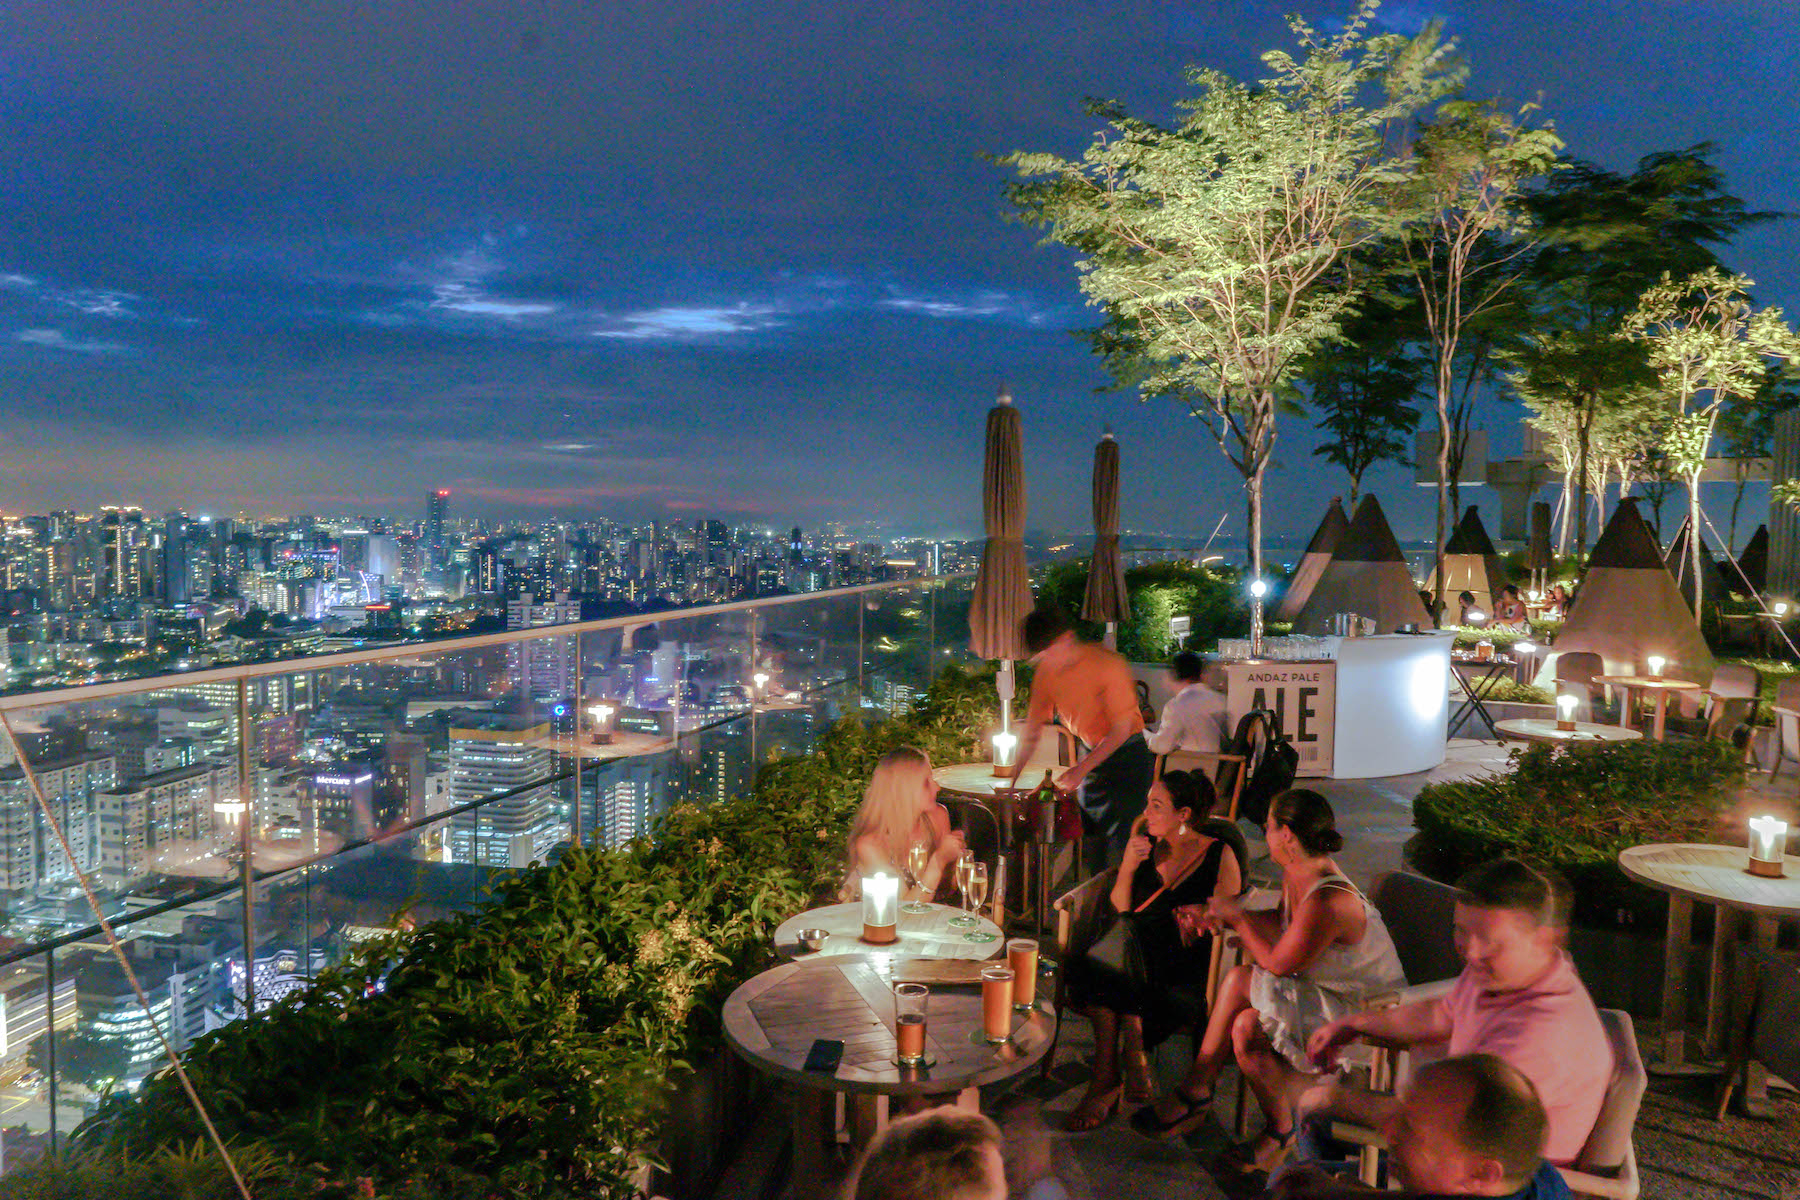 Top 5 Rooftop Bars to Check Out Singapore's Night View